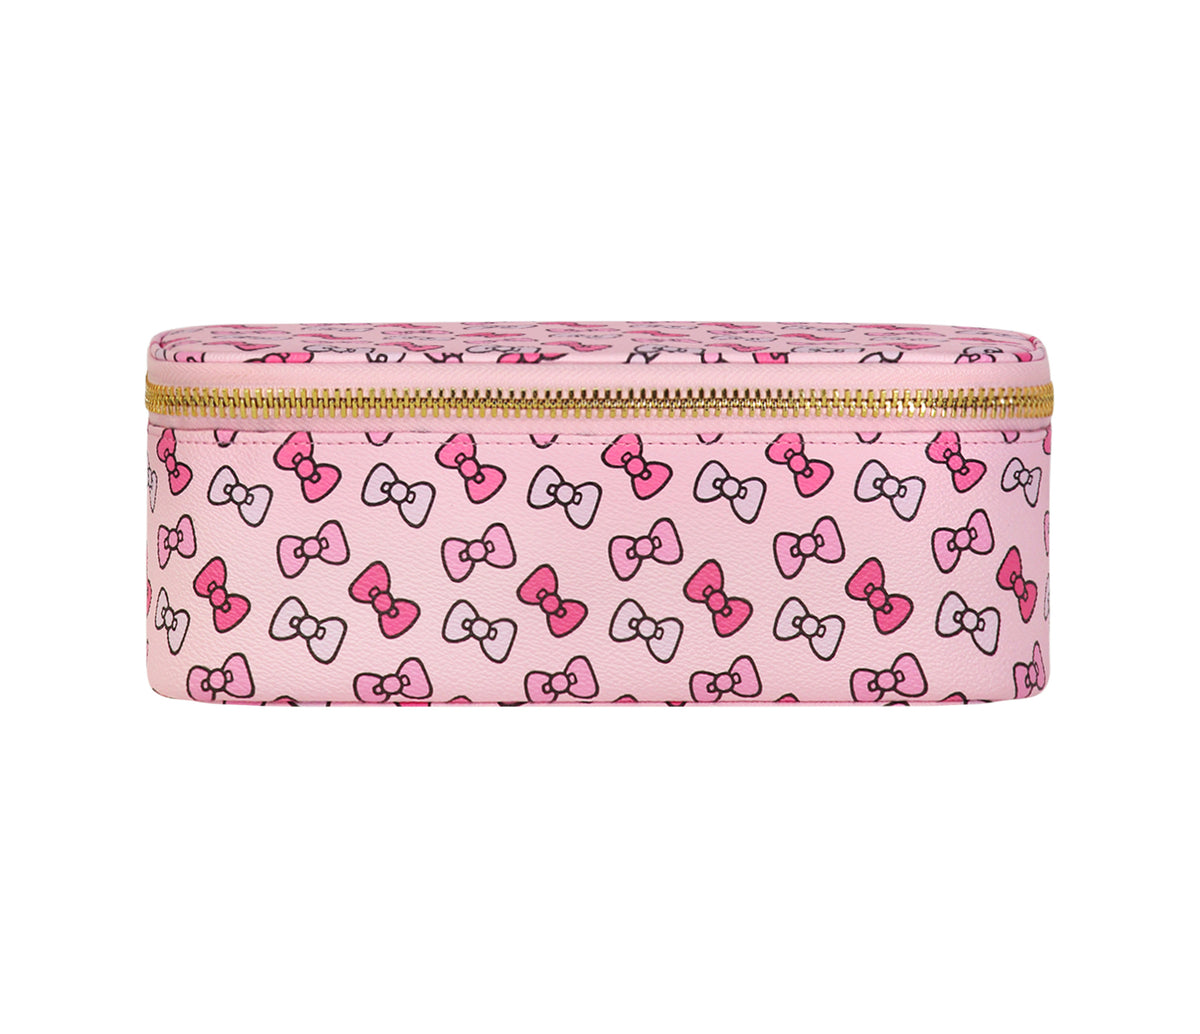 Stoney Clover Lane x Hello Kitty Bows Mirror Makeup Bag